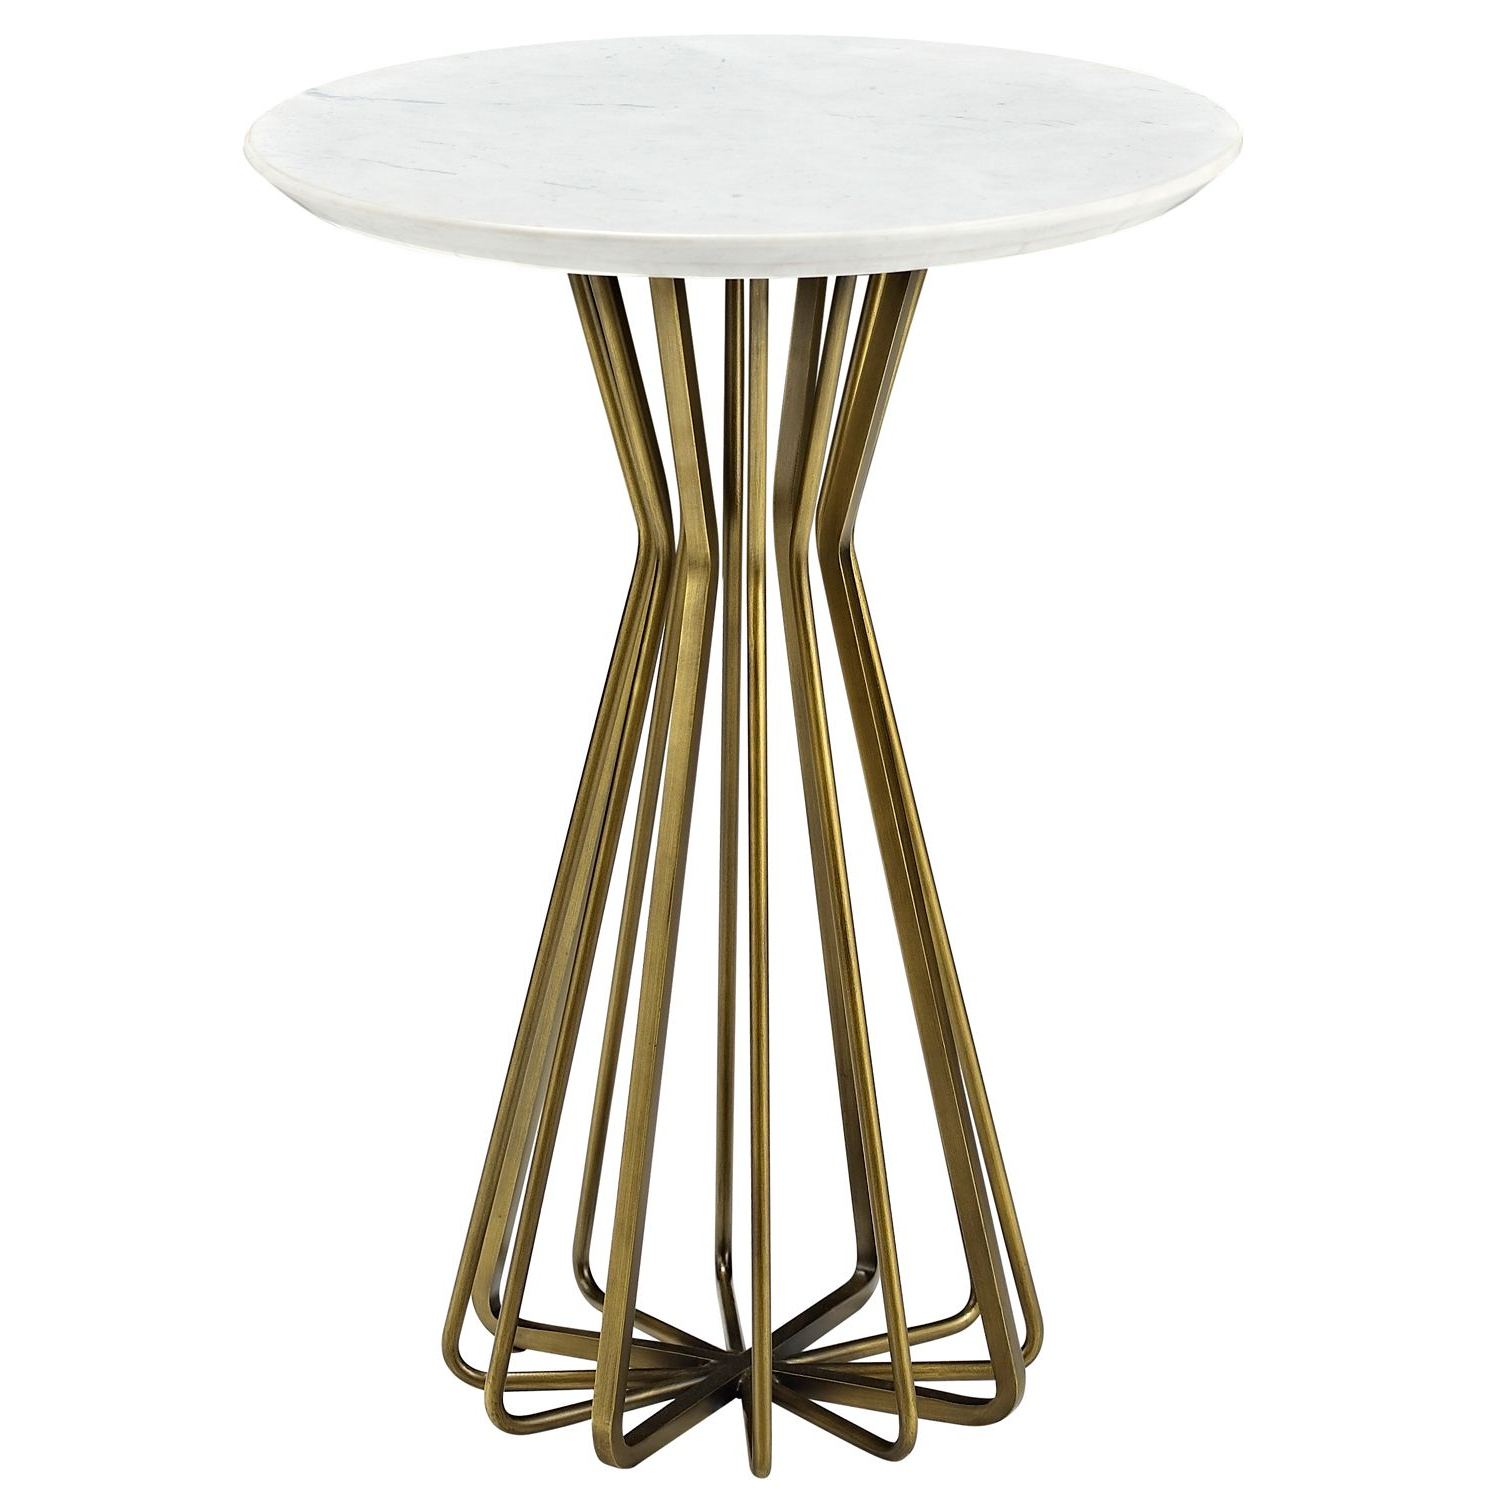 Exton Cocktail Tables Intended For 2019 A Compelling Openwork Design Provides The Contemporary Style Of The (View 7 of 20)